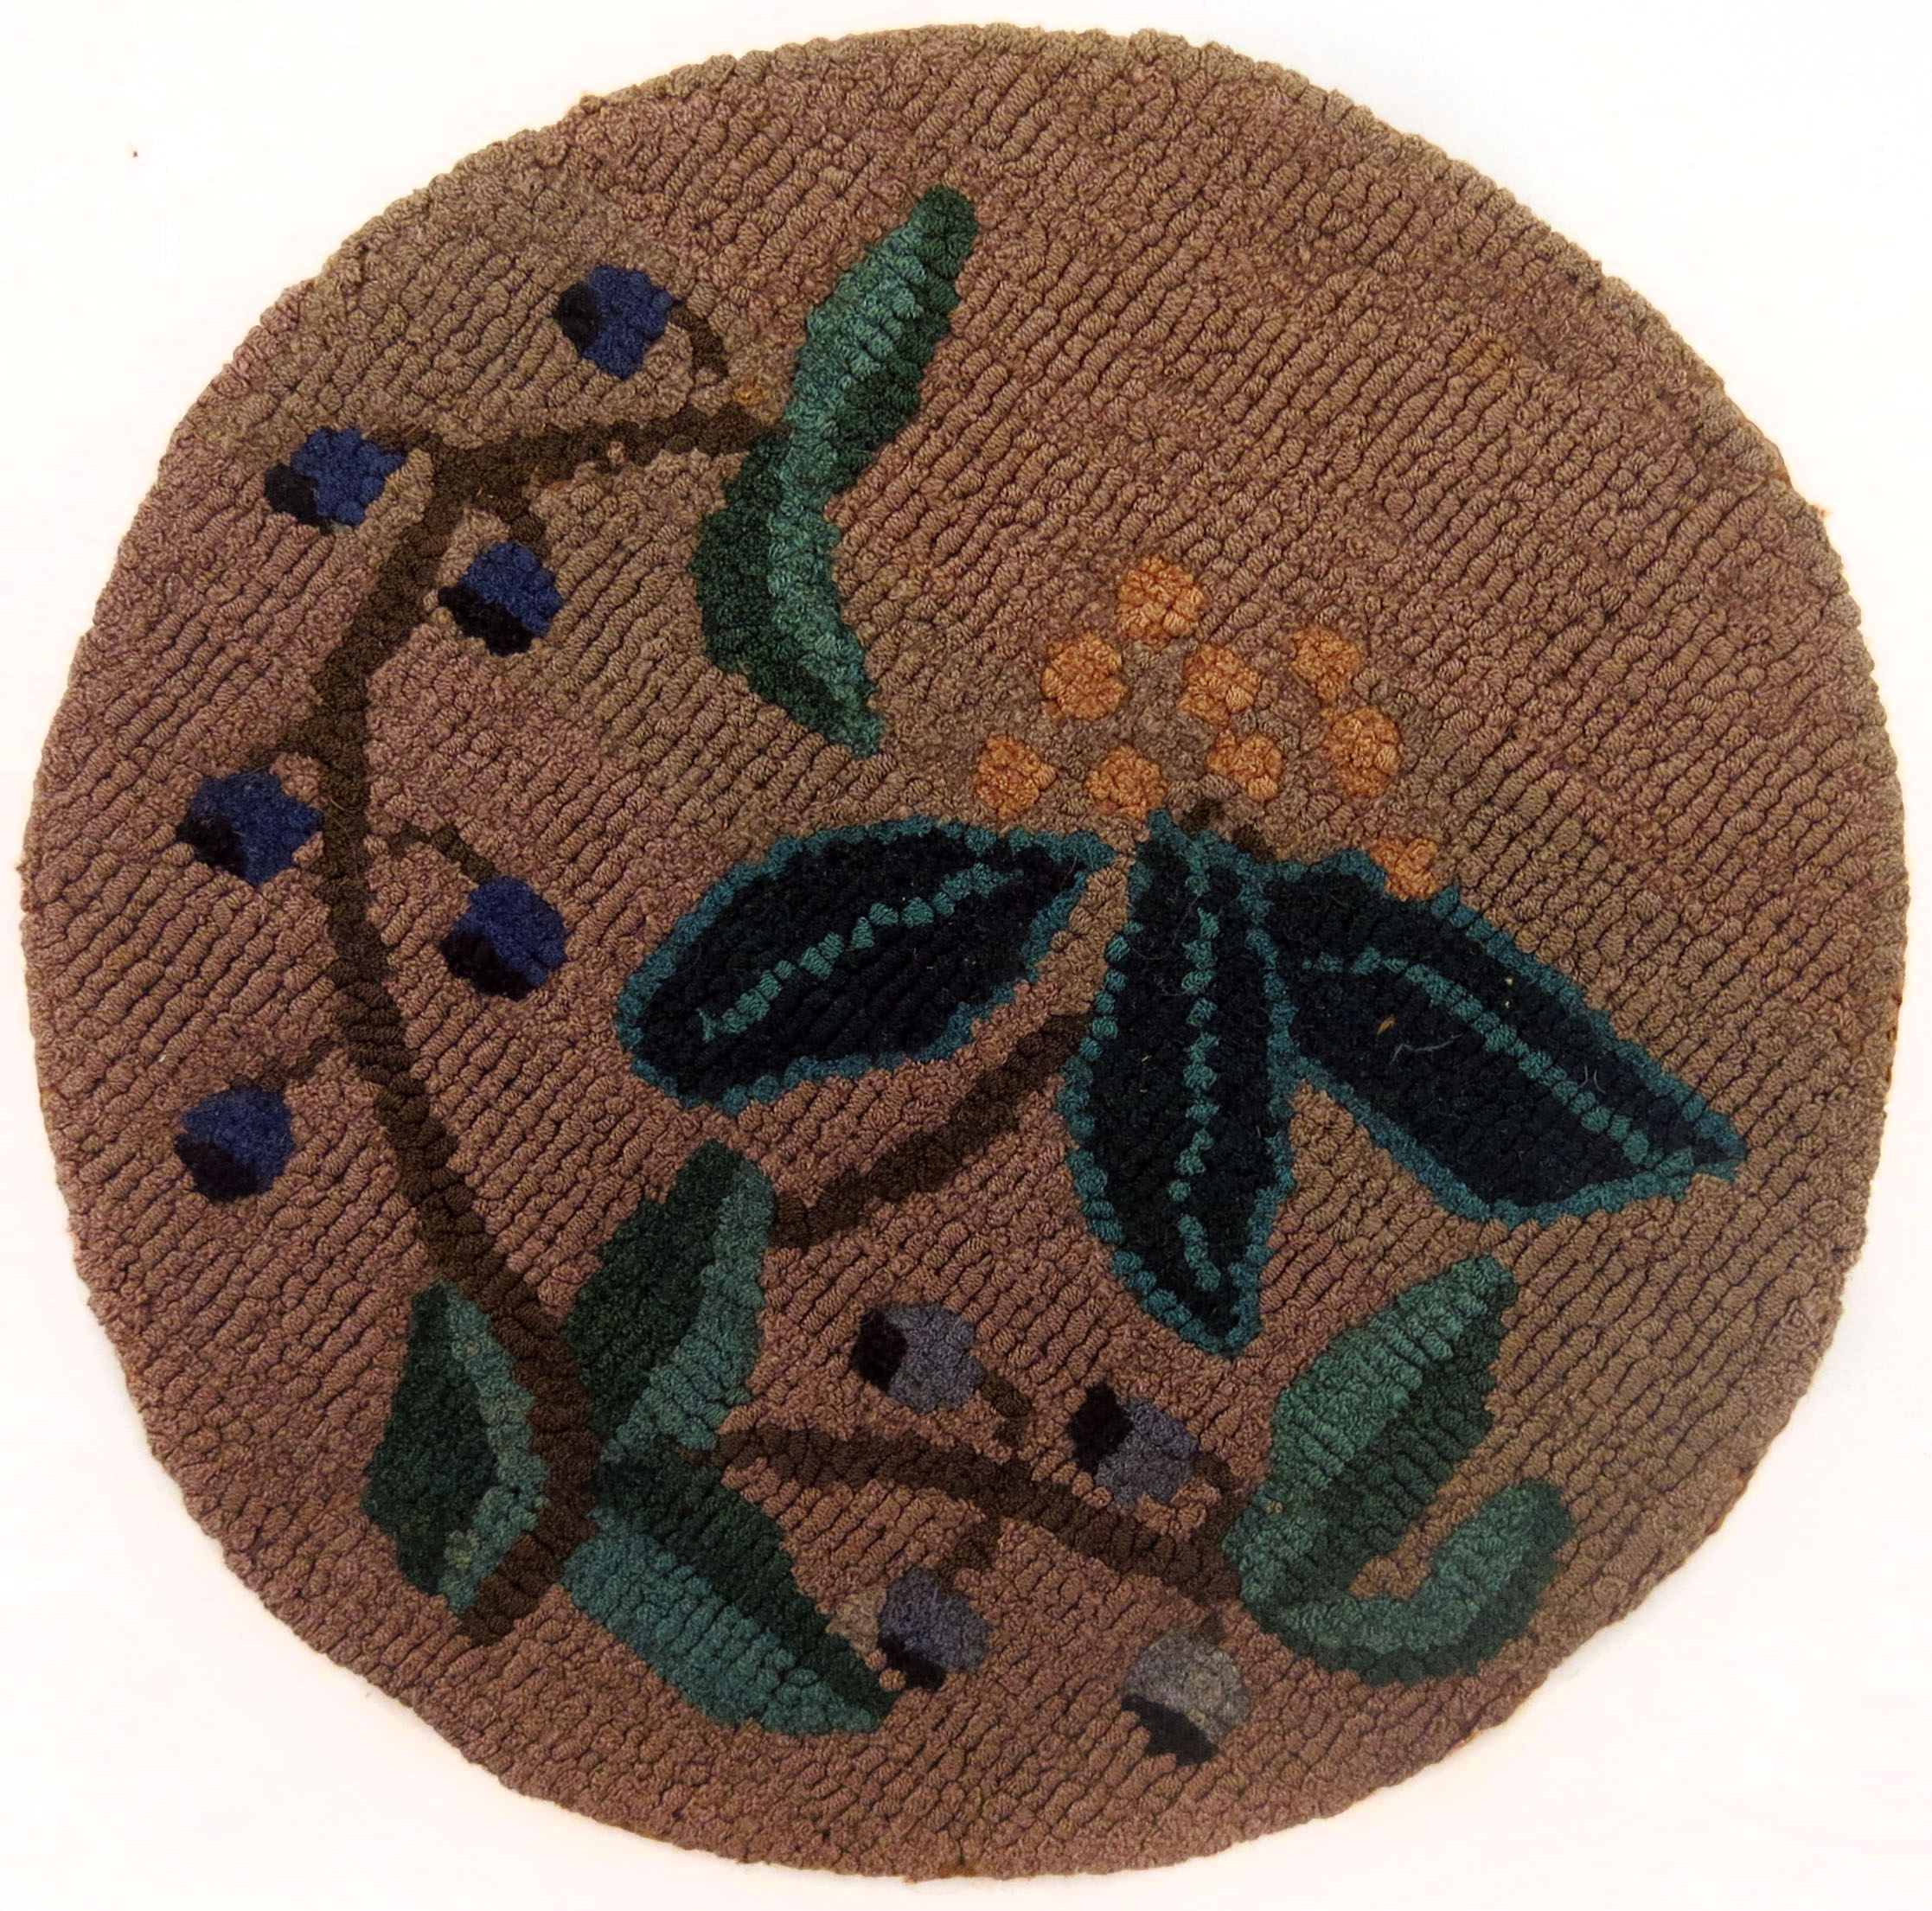 Anonymous, The Grenfell Mission, Small Crackerberry Table Mat, c. 1940, silk and rayon; dyed, 7 1/2 in diam.